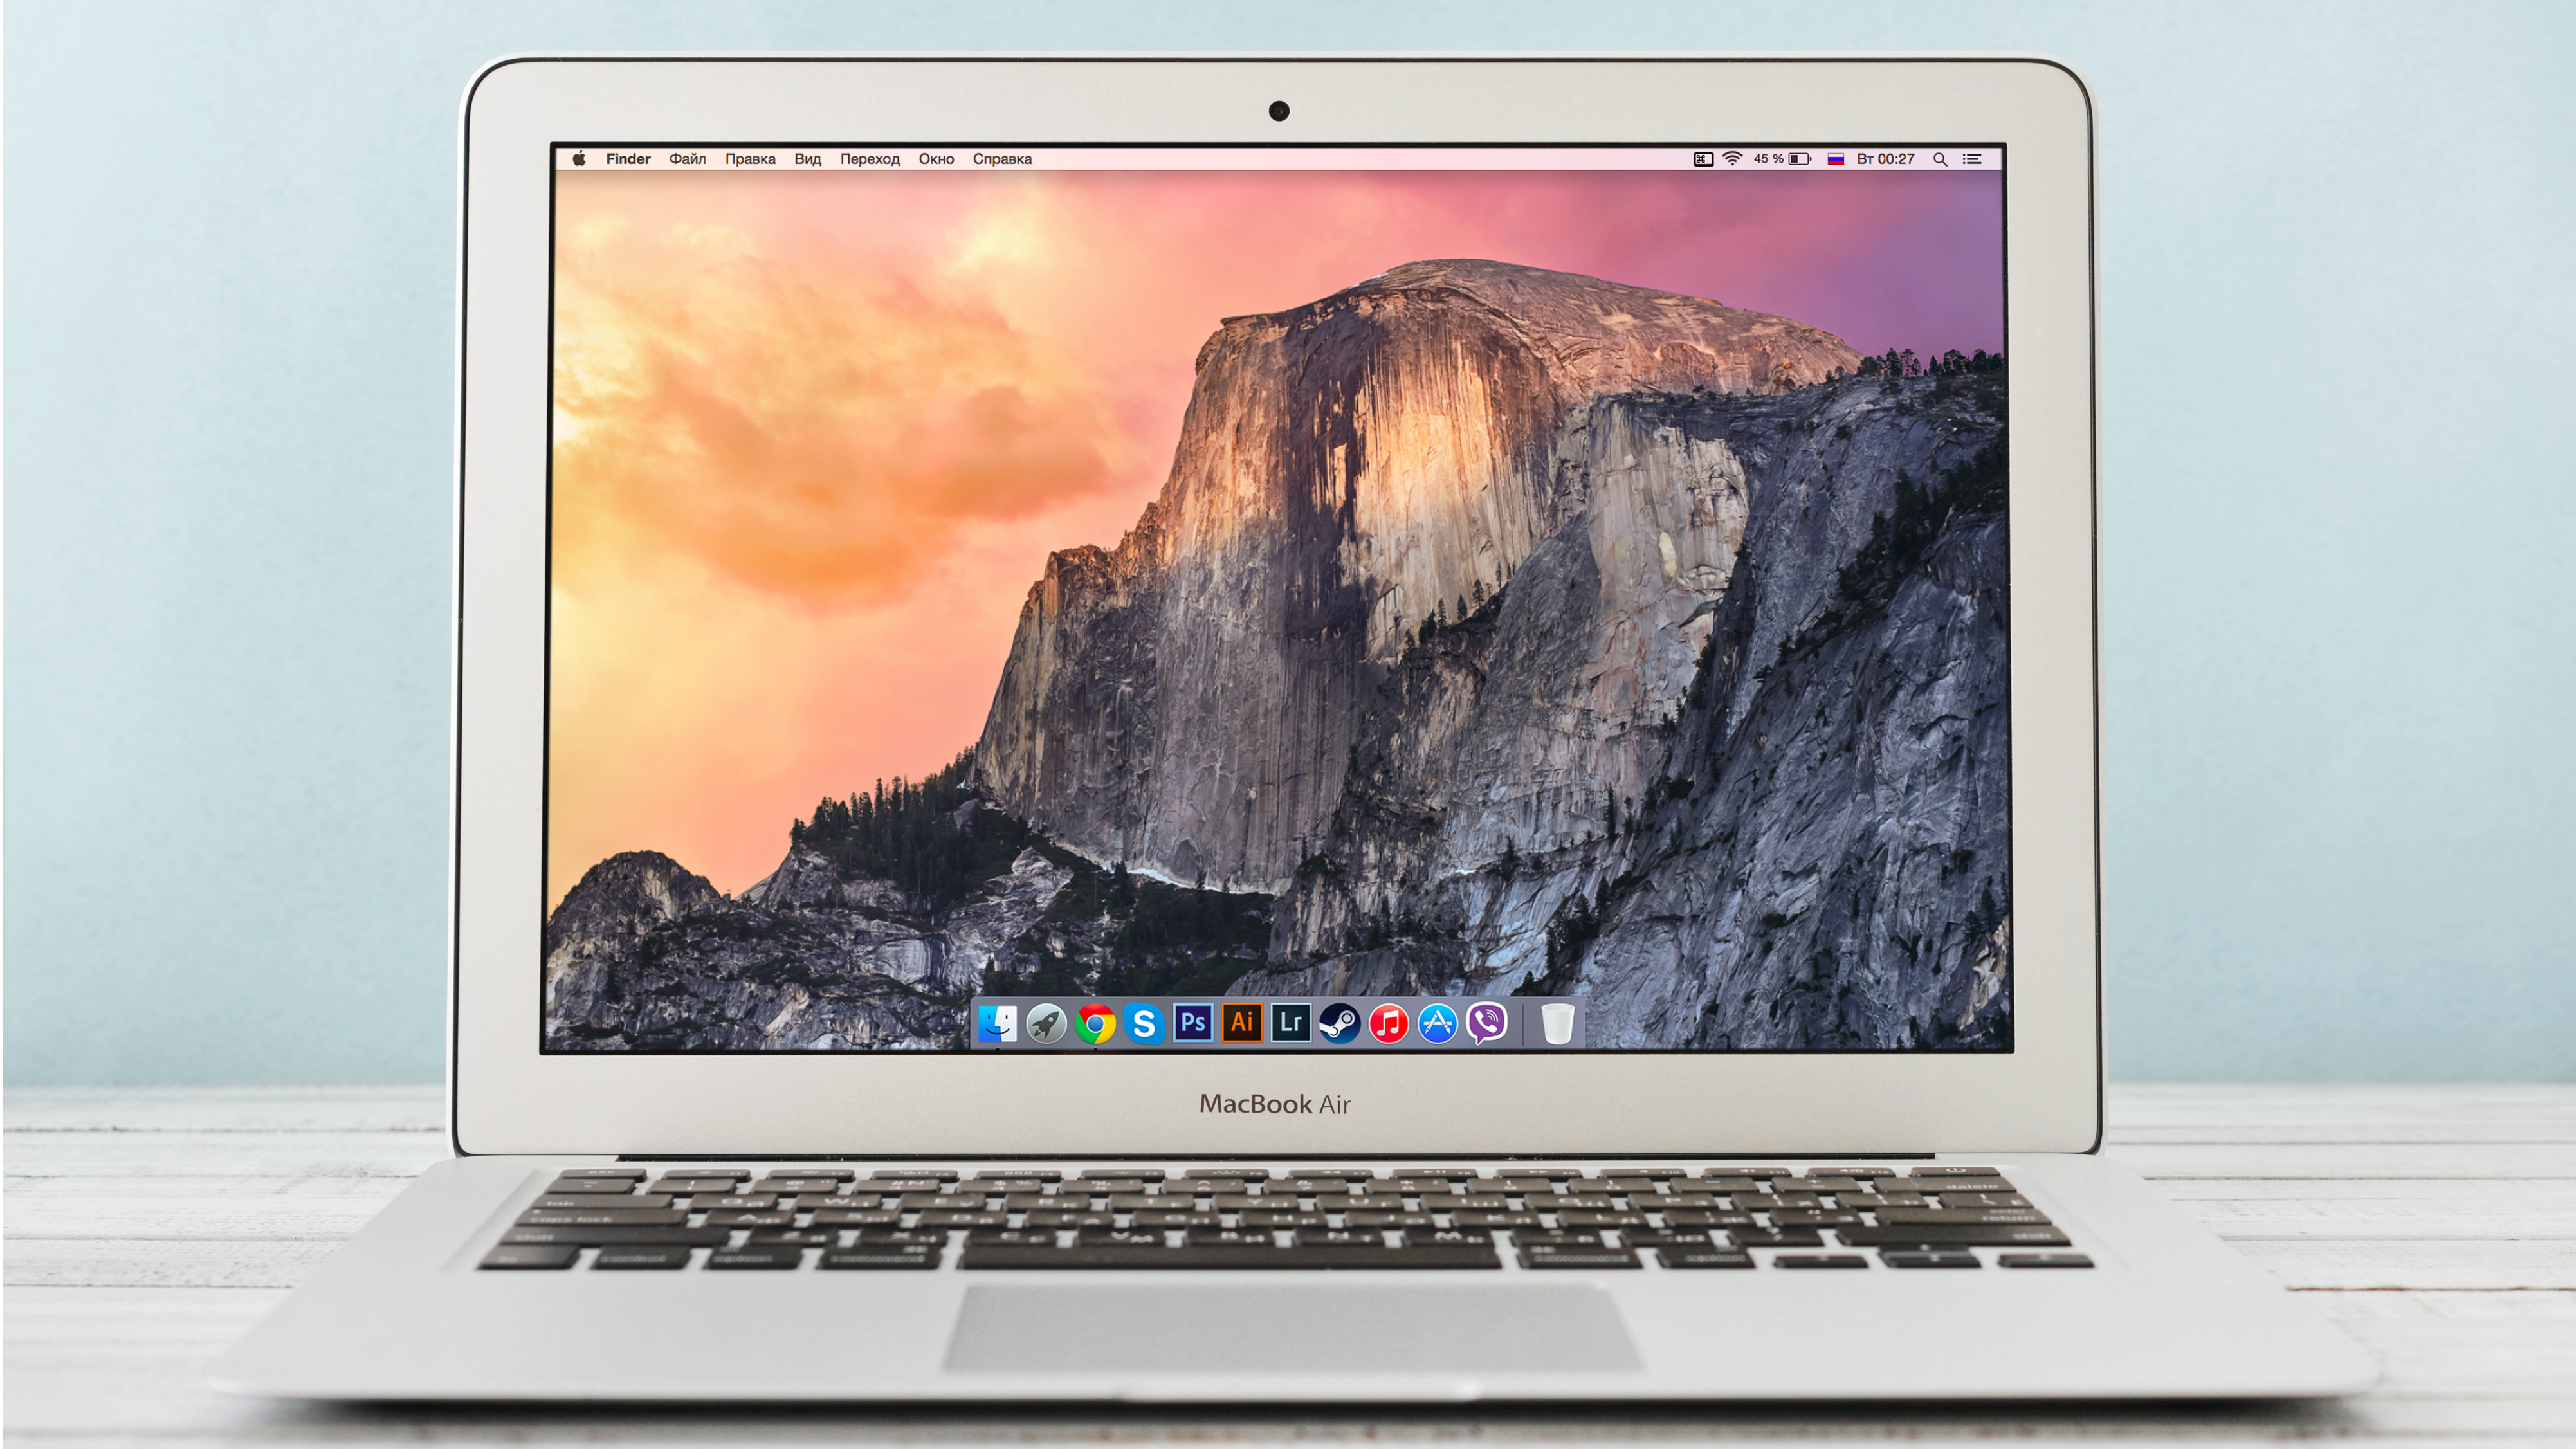 The 13-inch MacBook Air gets a $250 price cut at Best Buy